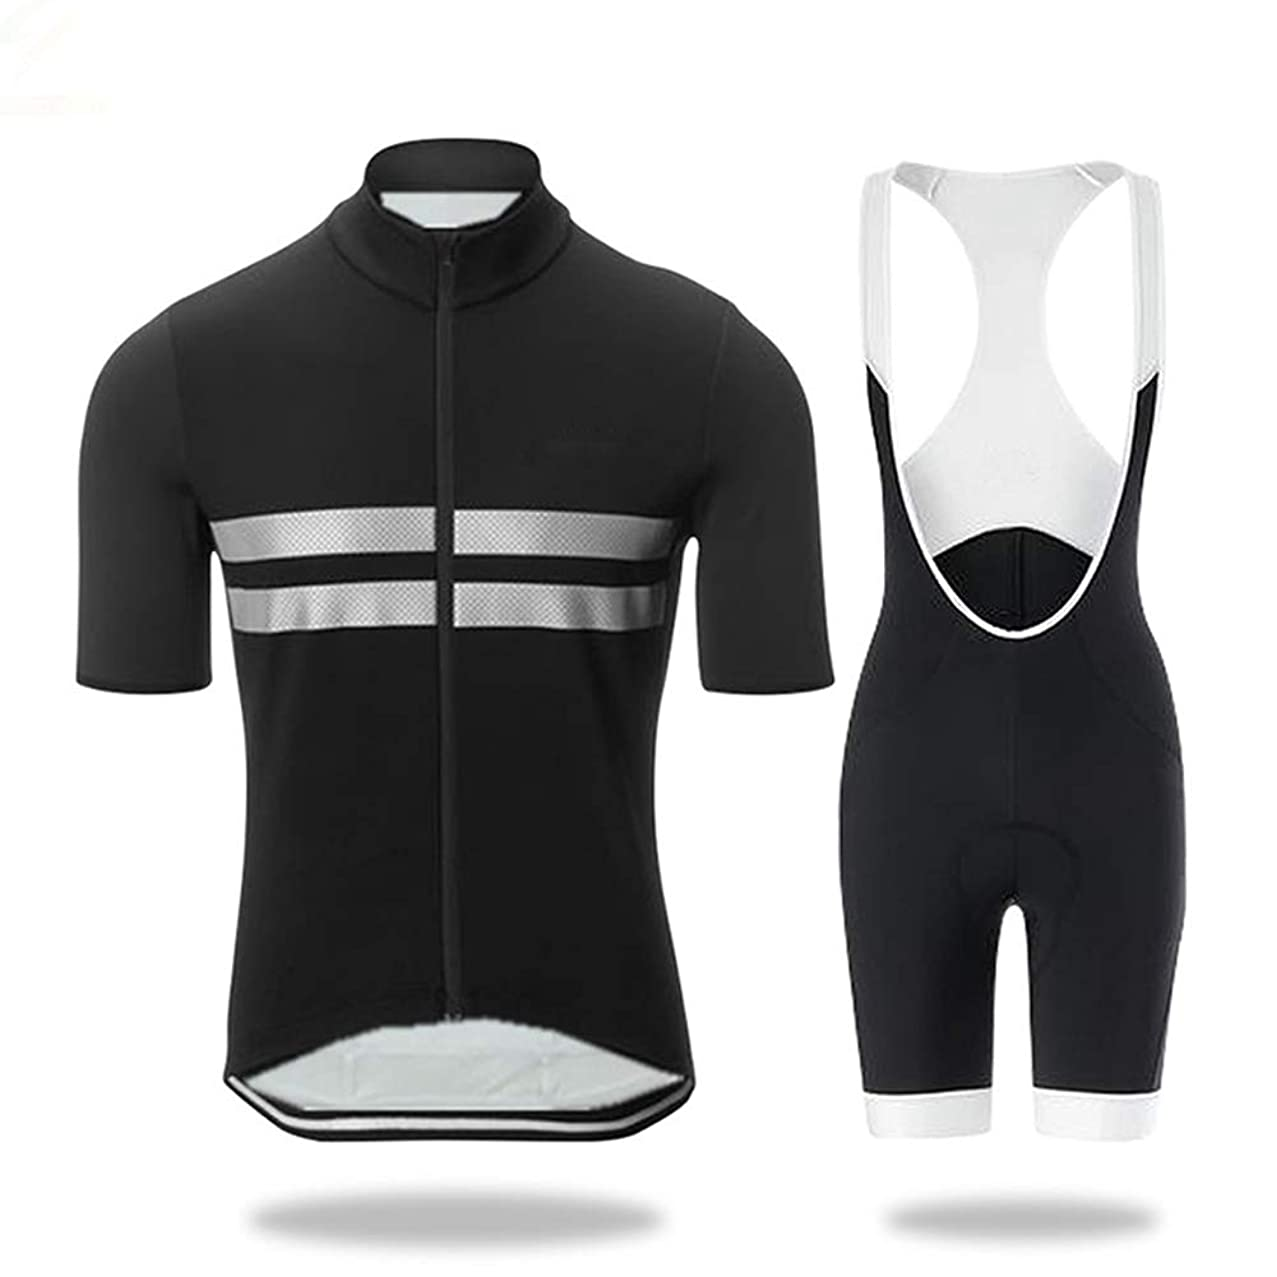 Grist CC Men Cycling Clothing Set, Cycling Jersey + 3D Padded Pants Trousers Breathable Quick-Dry,Outdoor Cycling,XXXXL